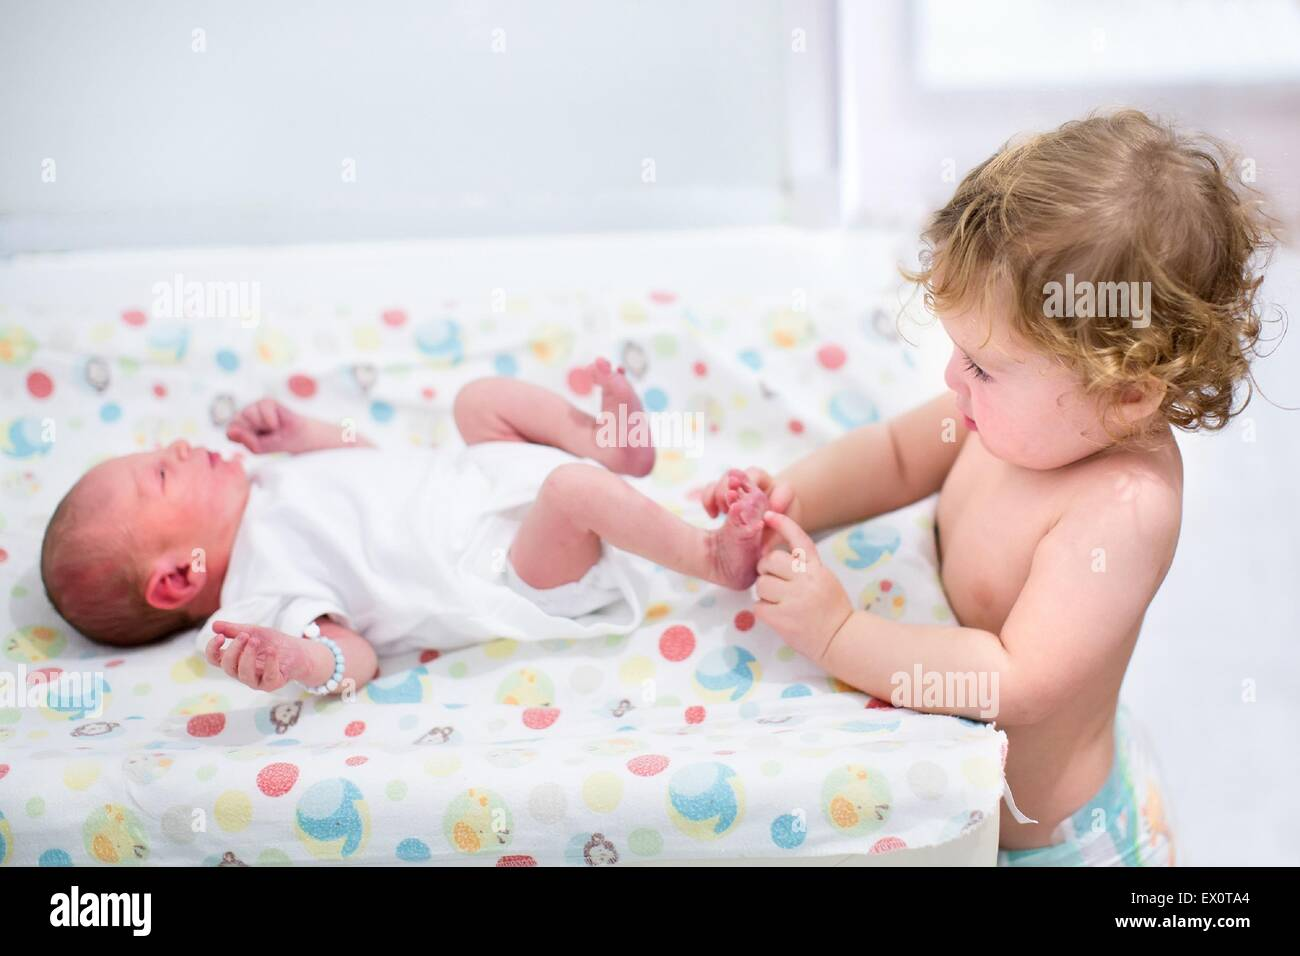 Portrait of a cute curly toddler girl playing with the feet of her newborn baby brother on a changing table - Stock Image